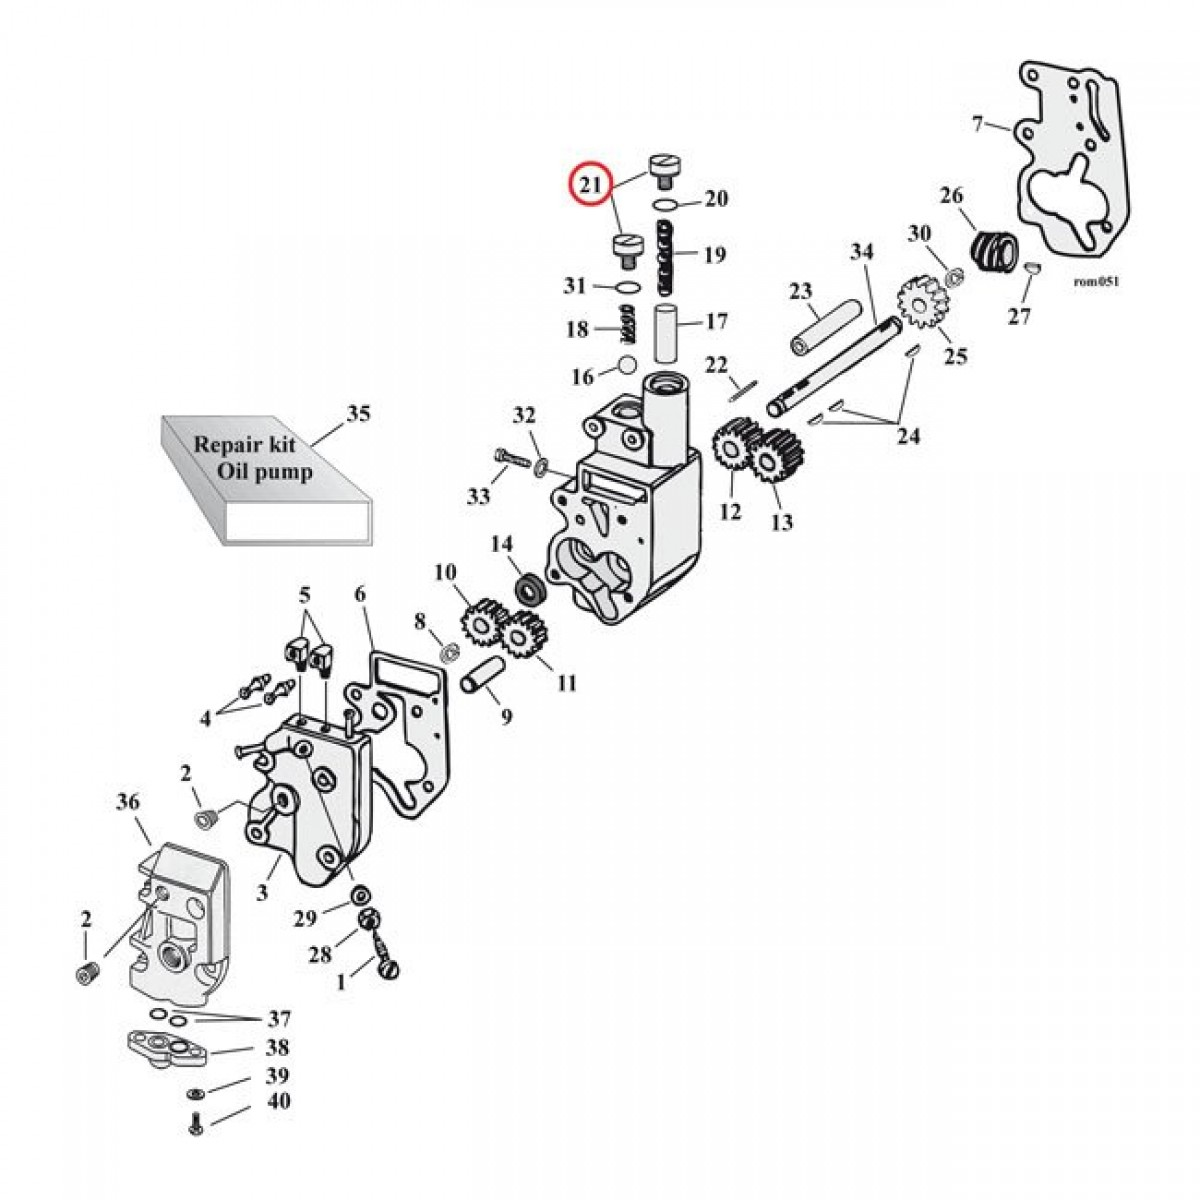 [TT_6098] Harley Davidson Oil Pump Diagram Wiring Diagram